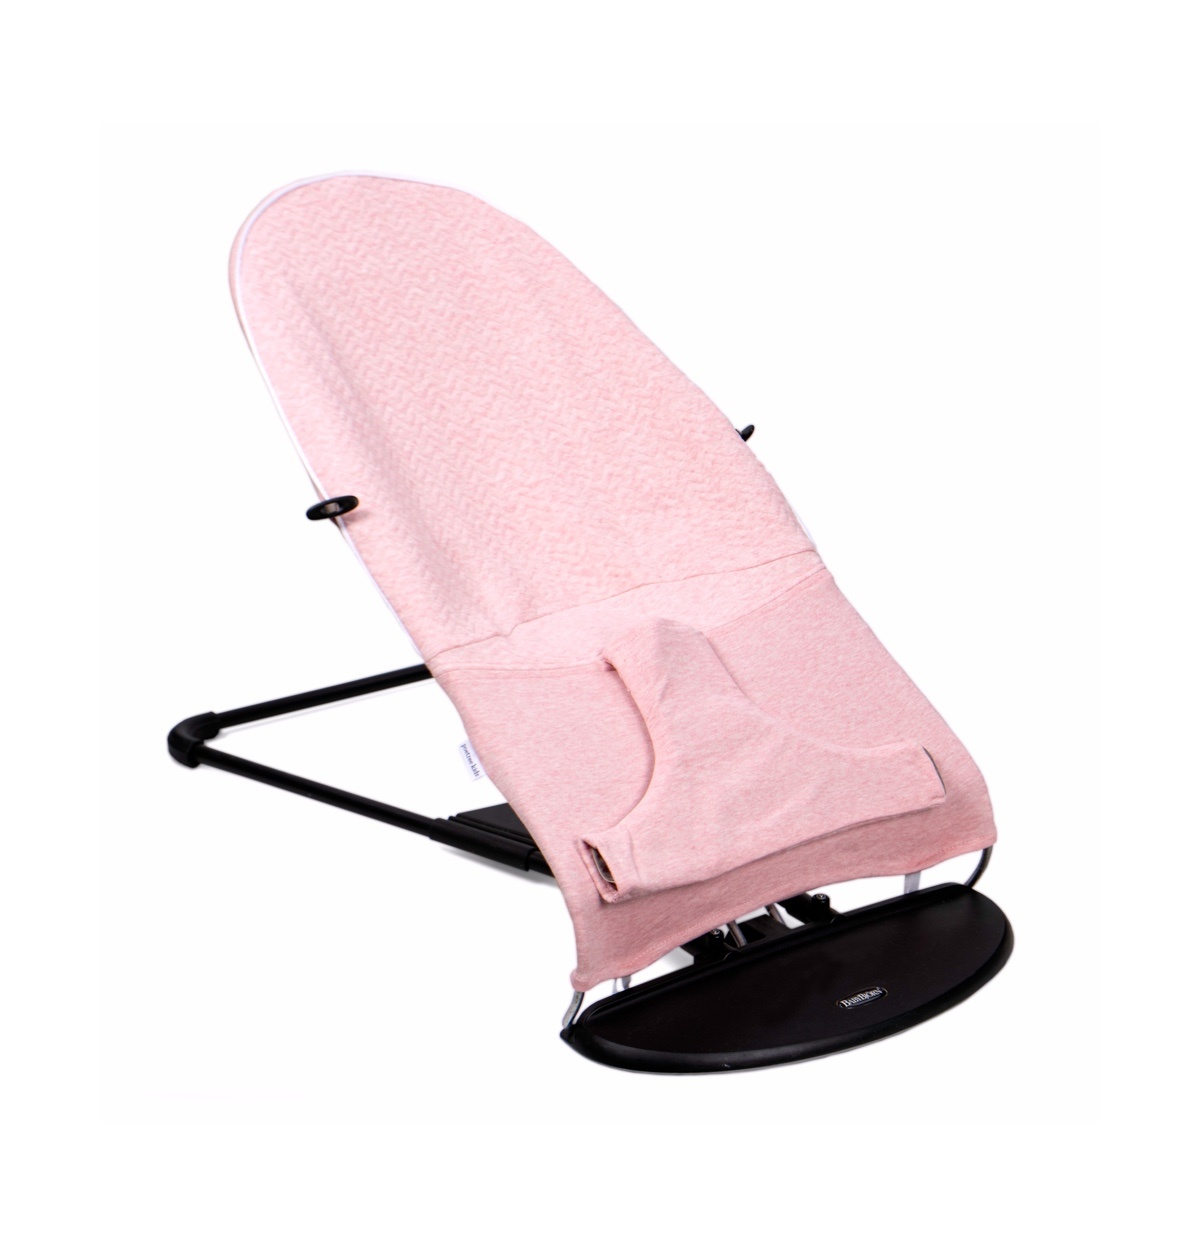 Protective cover for the Babybjörn bouncer Chevron Pink Melange-3